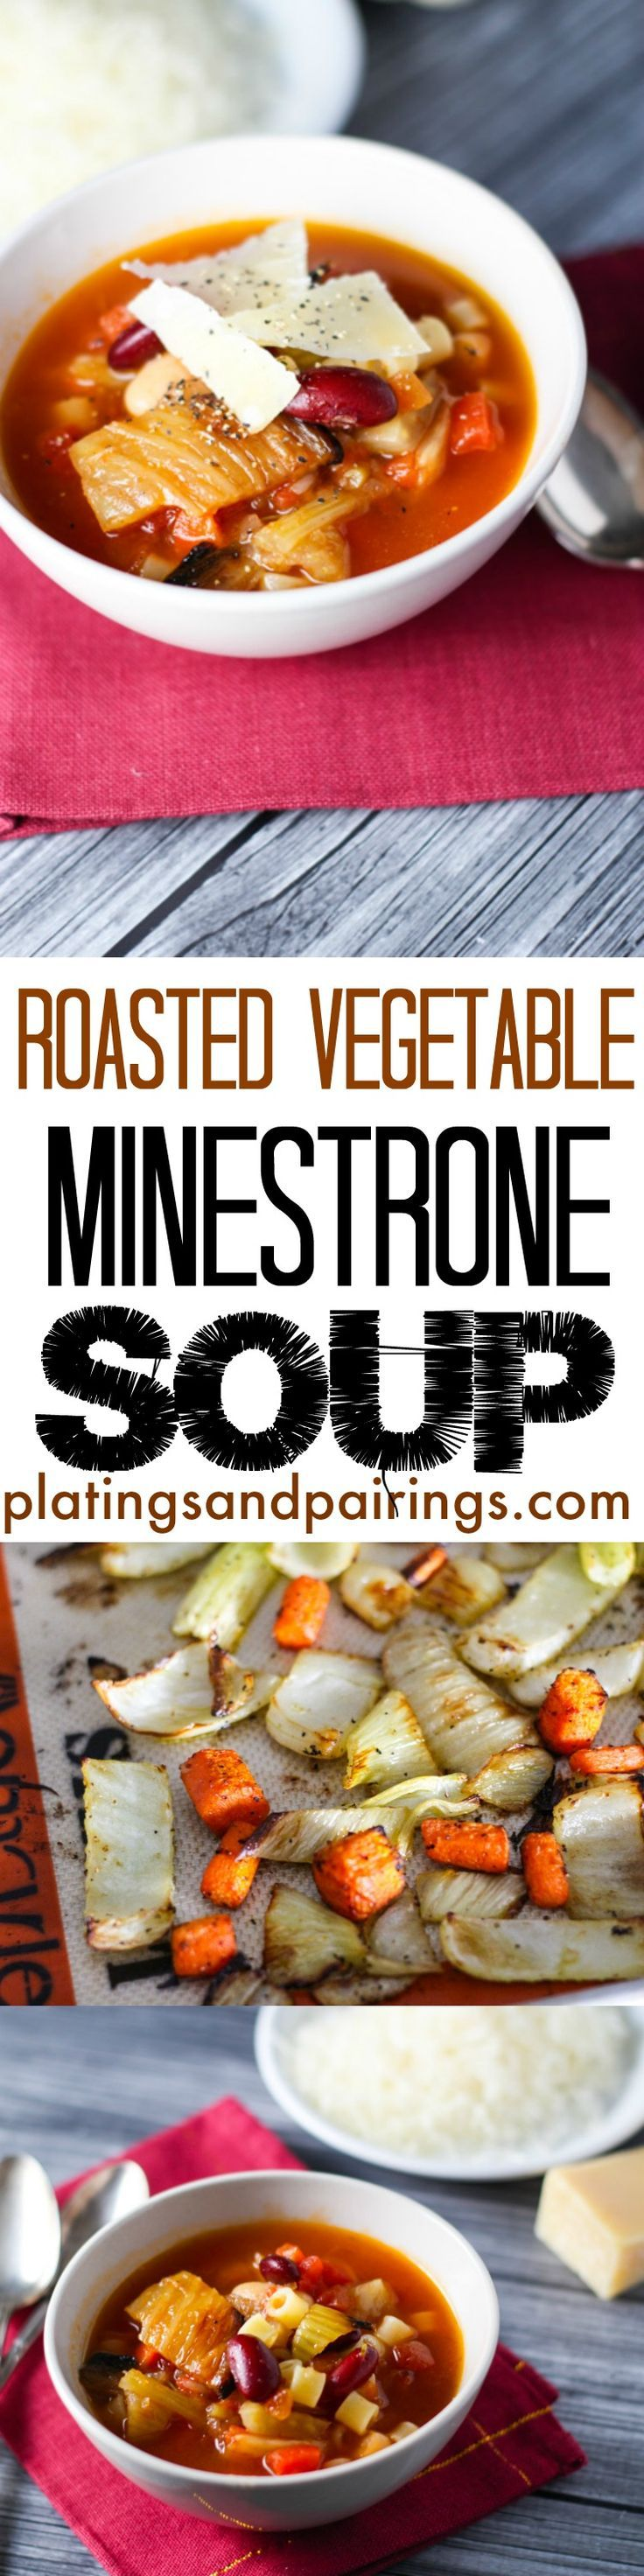 Roasted vegetables make this soup EXTRA delicious! Fennel and Carrots